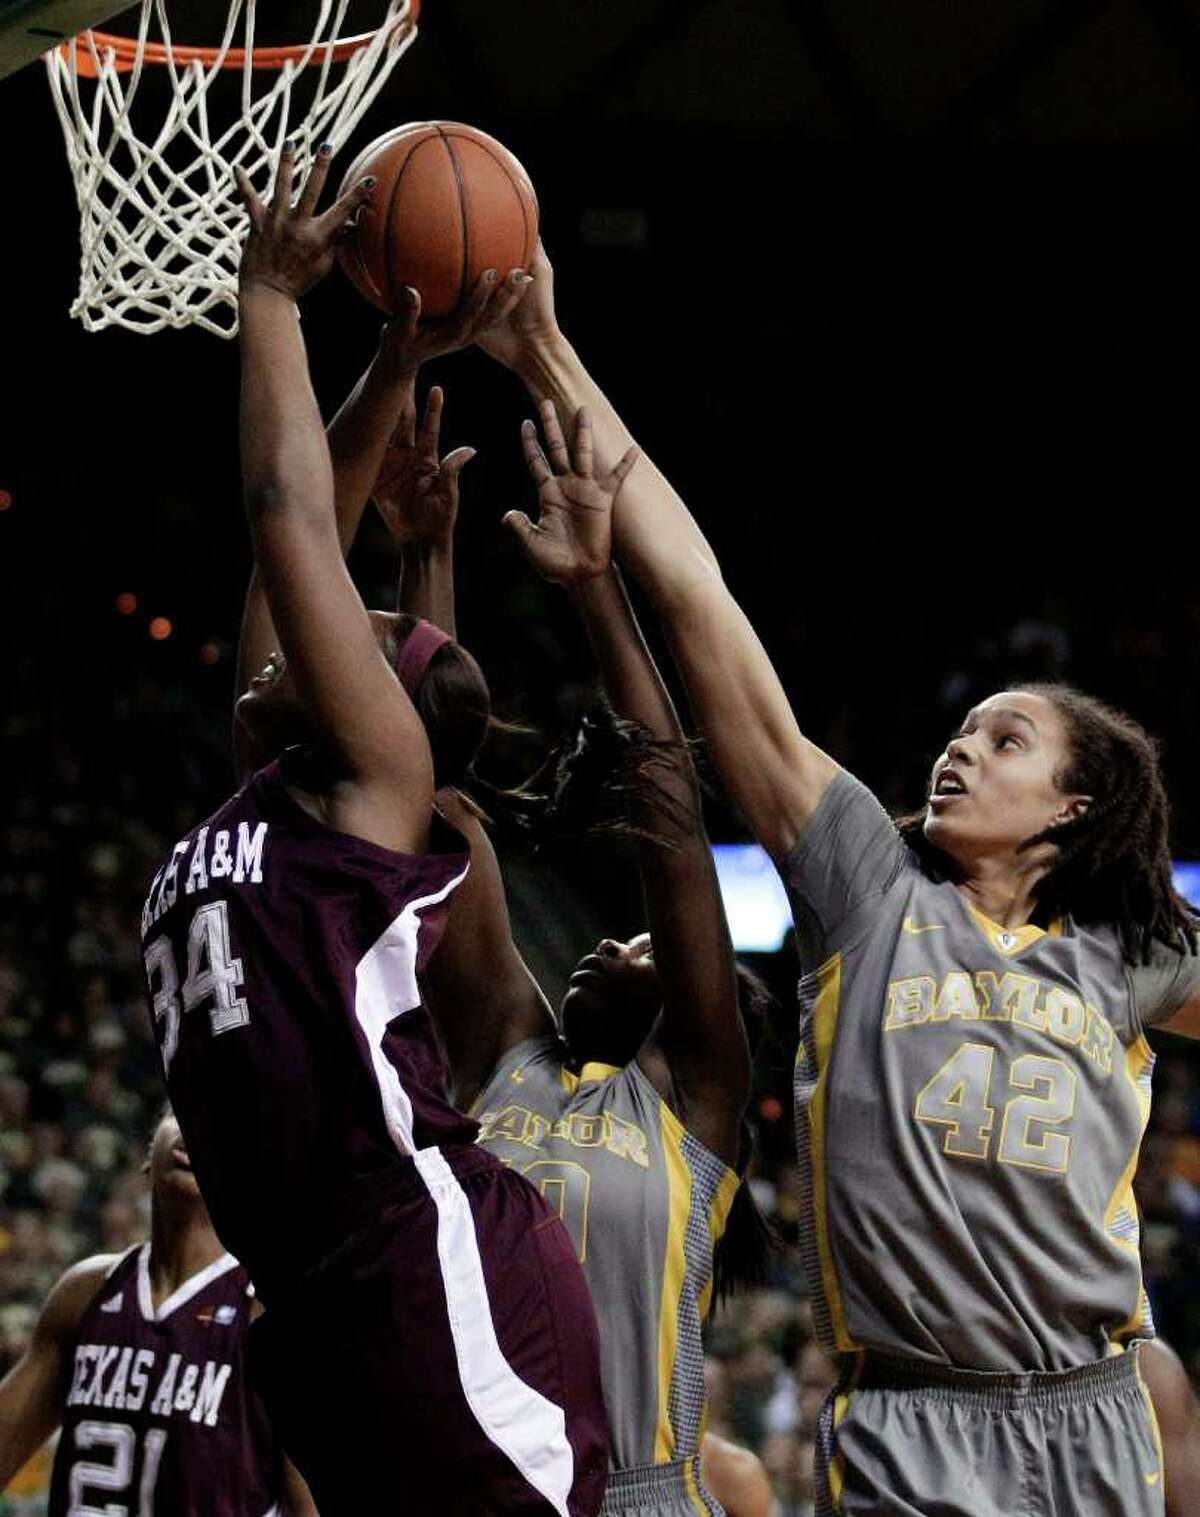 Baylor's Brittney Griner (right) blocks a shot by A&M's Karla Gilbert (left) in the teams' first meeting Feb. 11 in Waco.